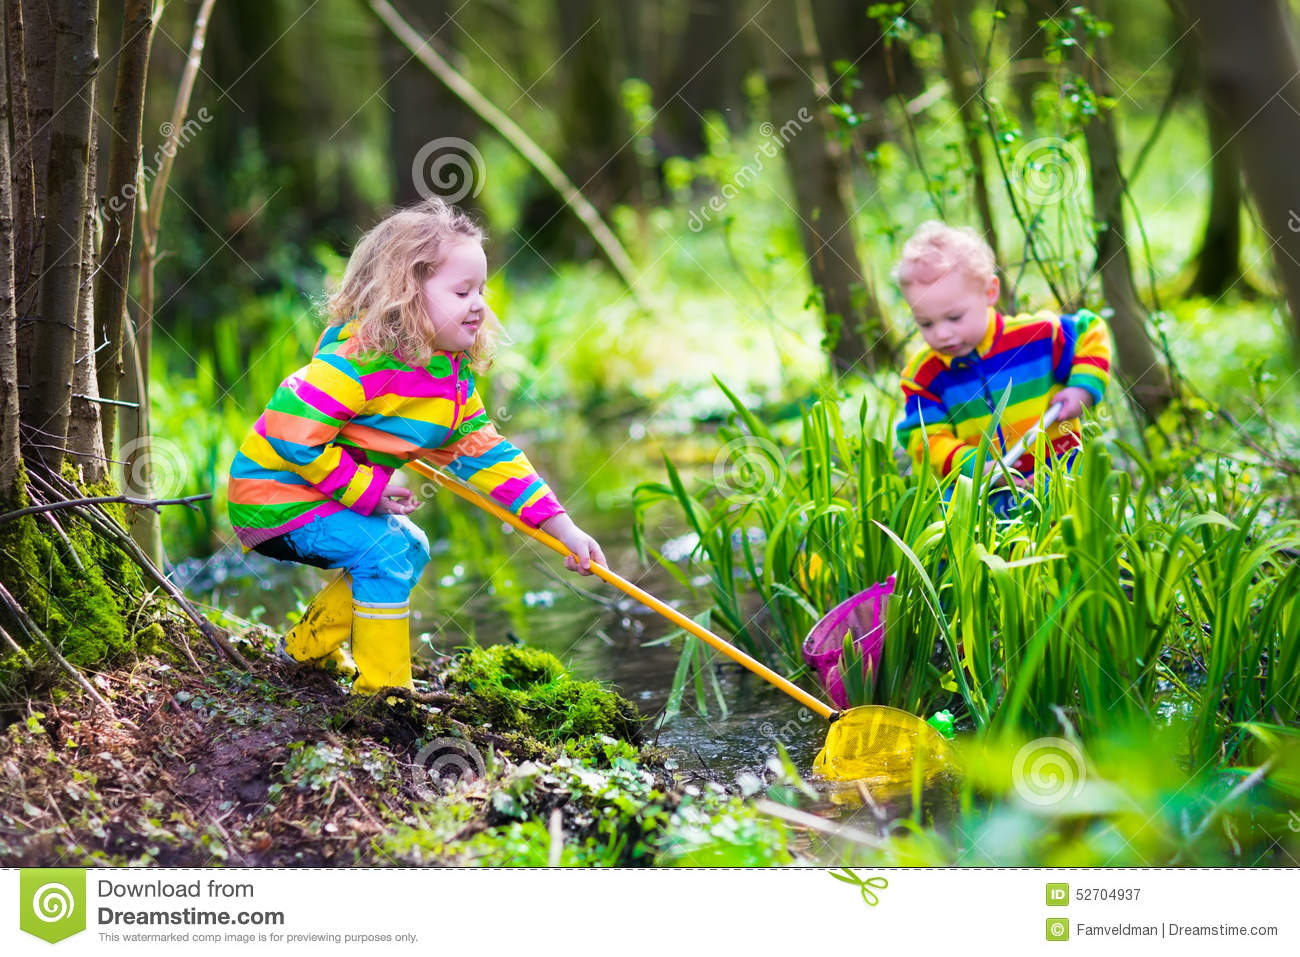 Kinder Garden: Kids Playing With Frog Stock Image. Image Of Messy